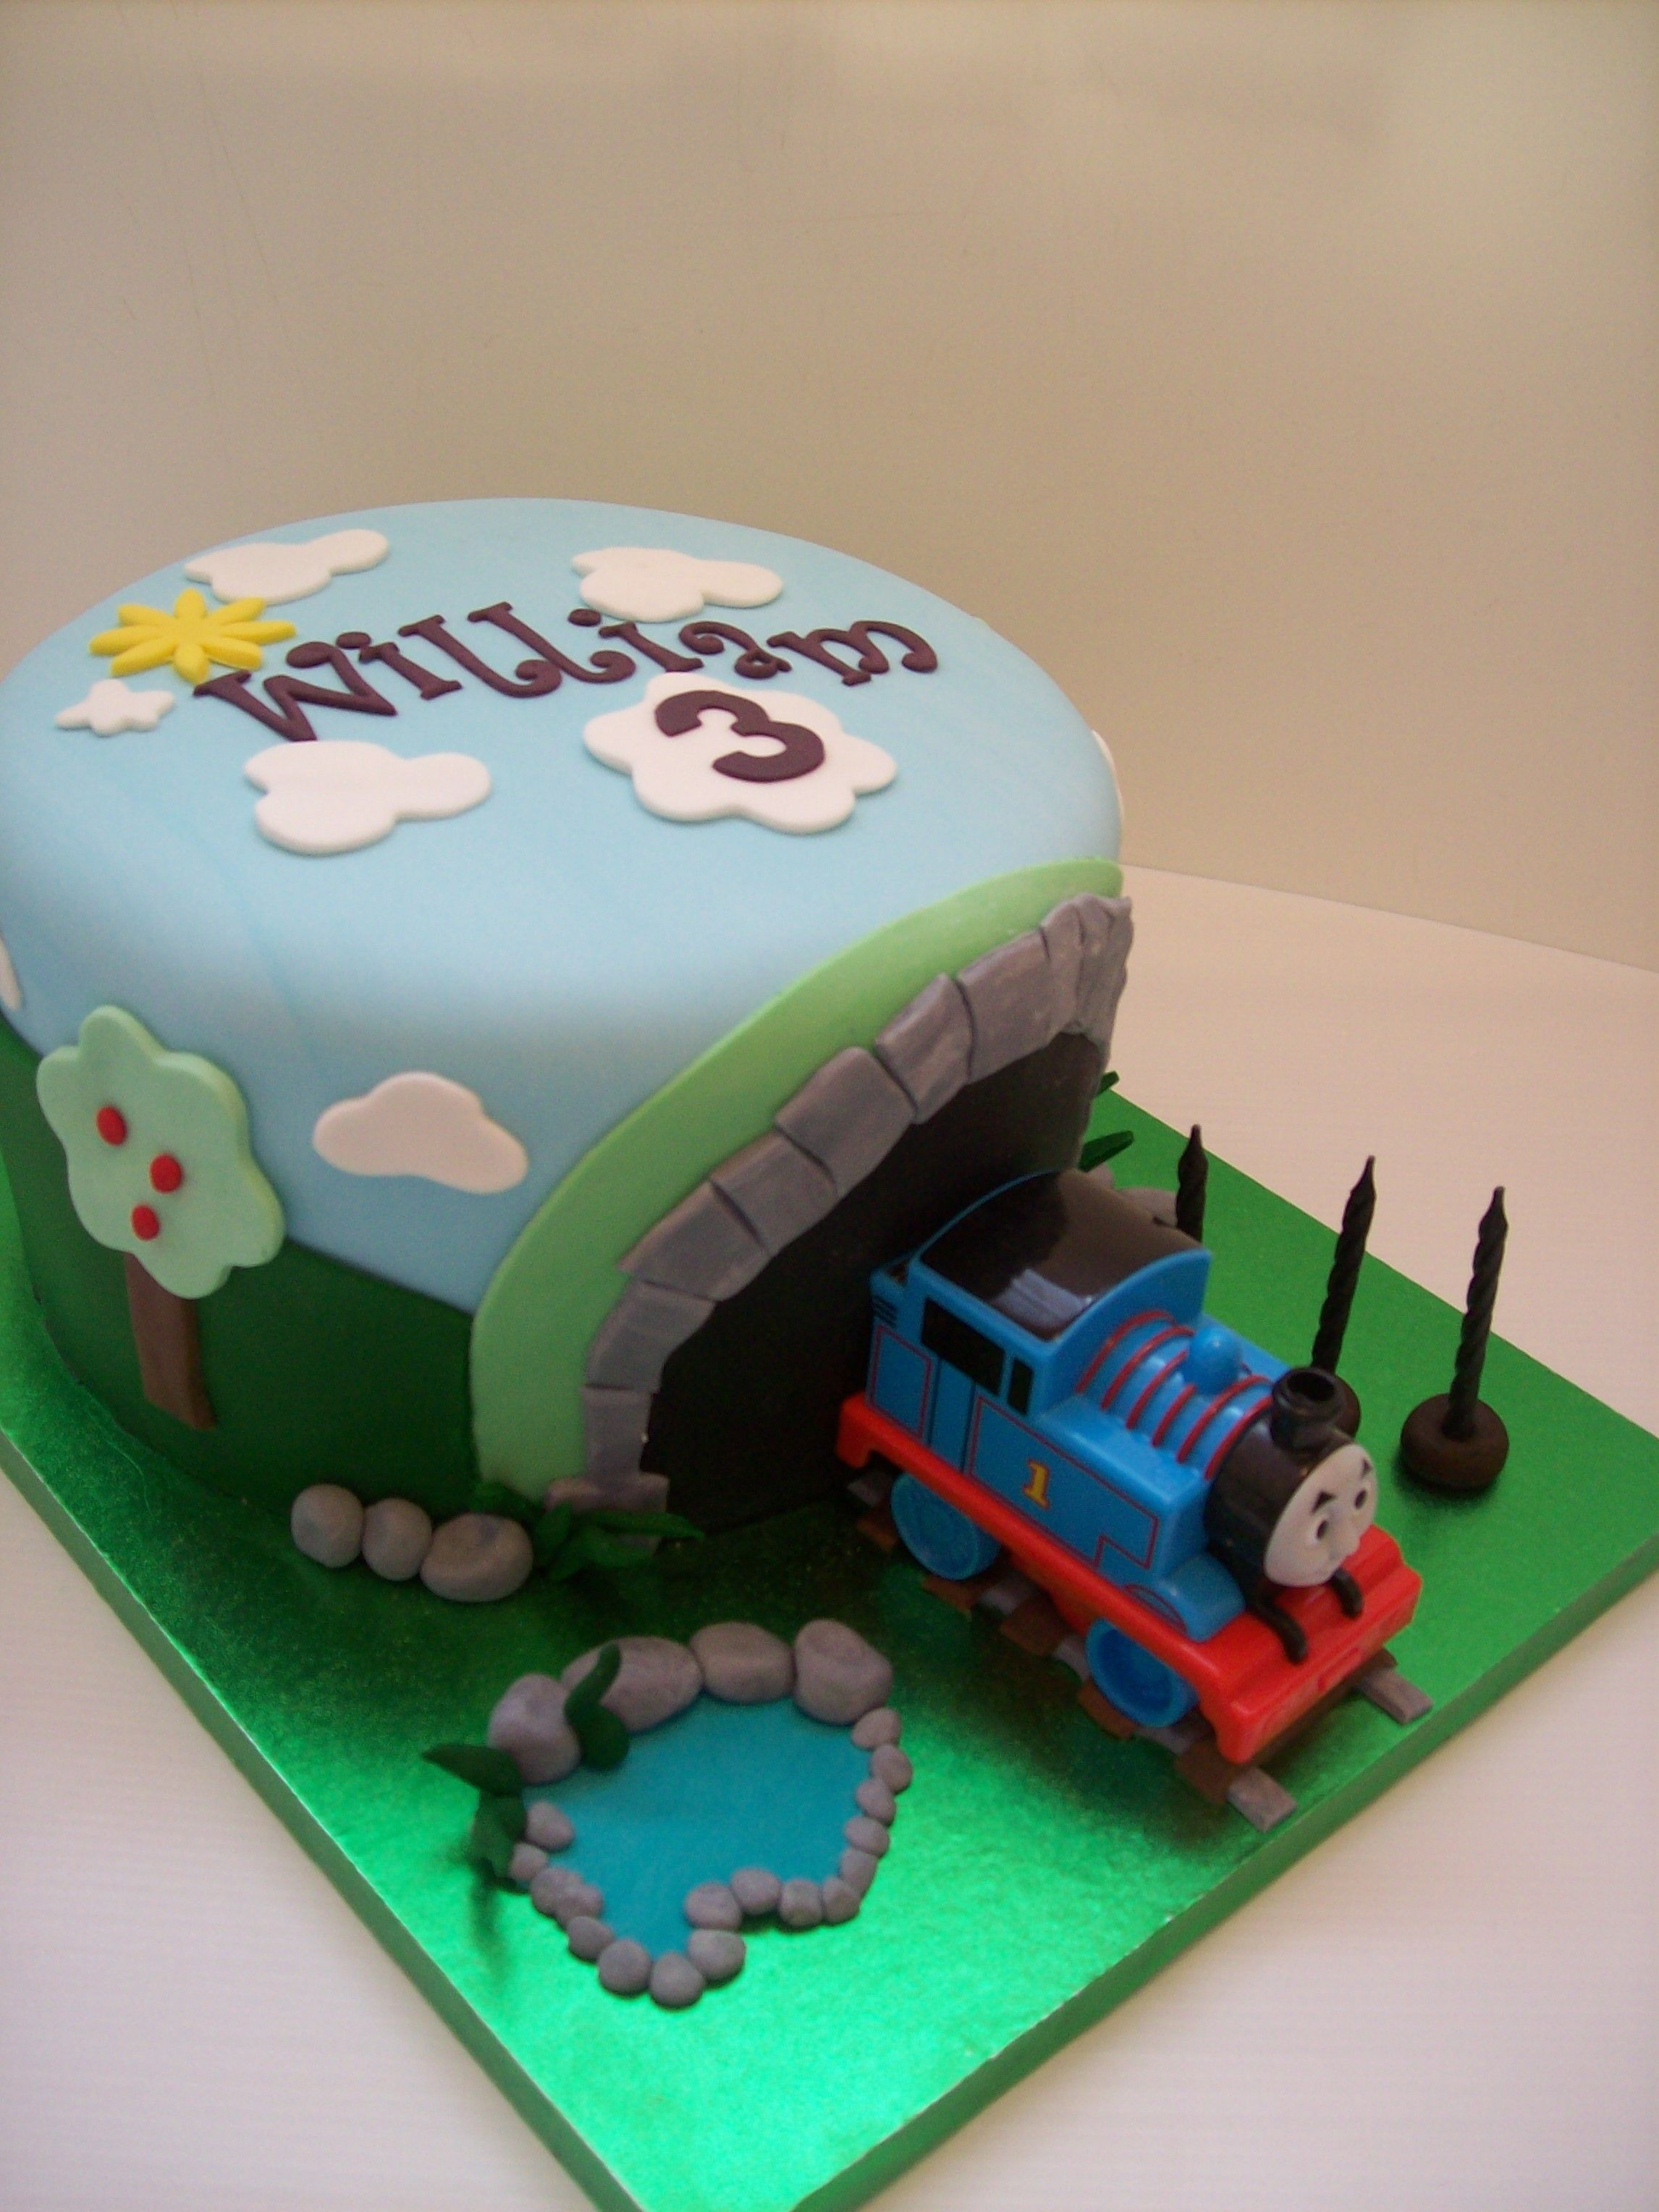 Thomas The Tank Engine Cake Auckland 249 Figurines